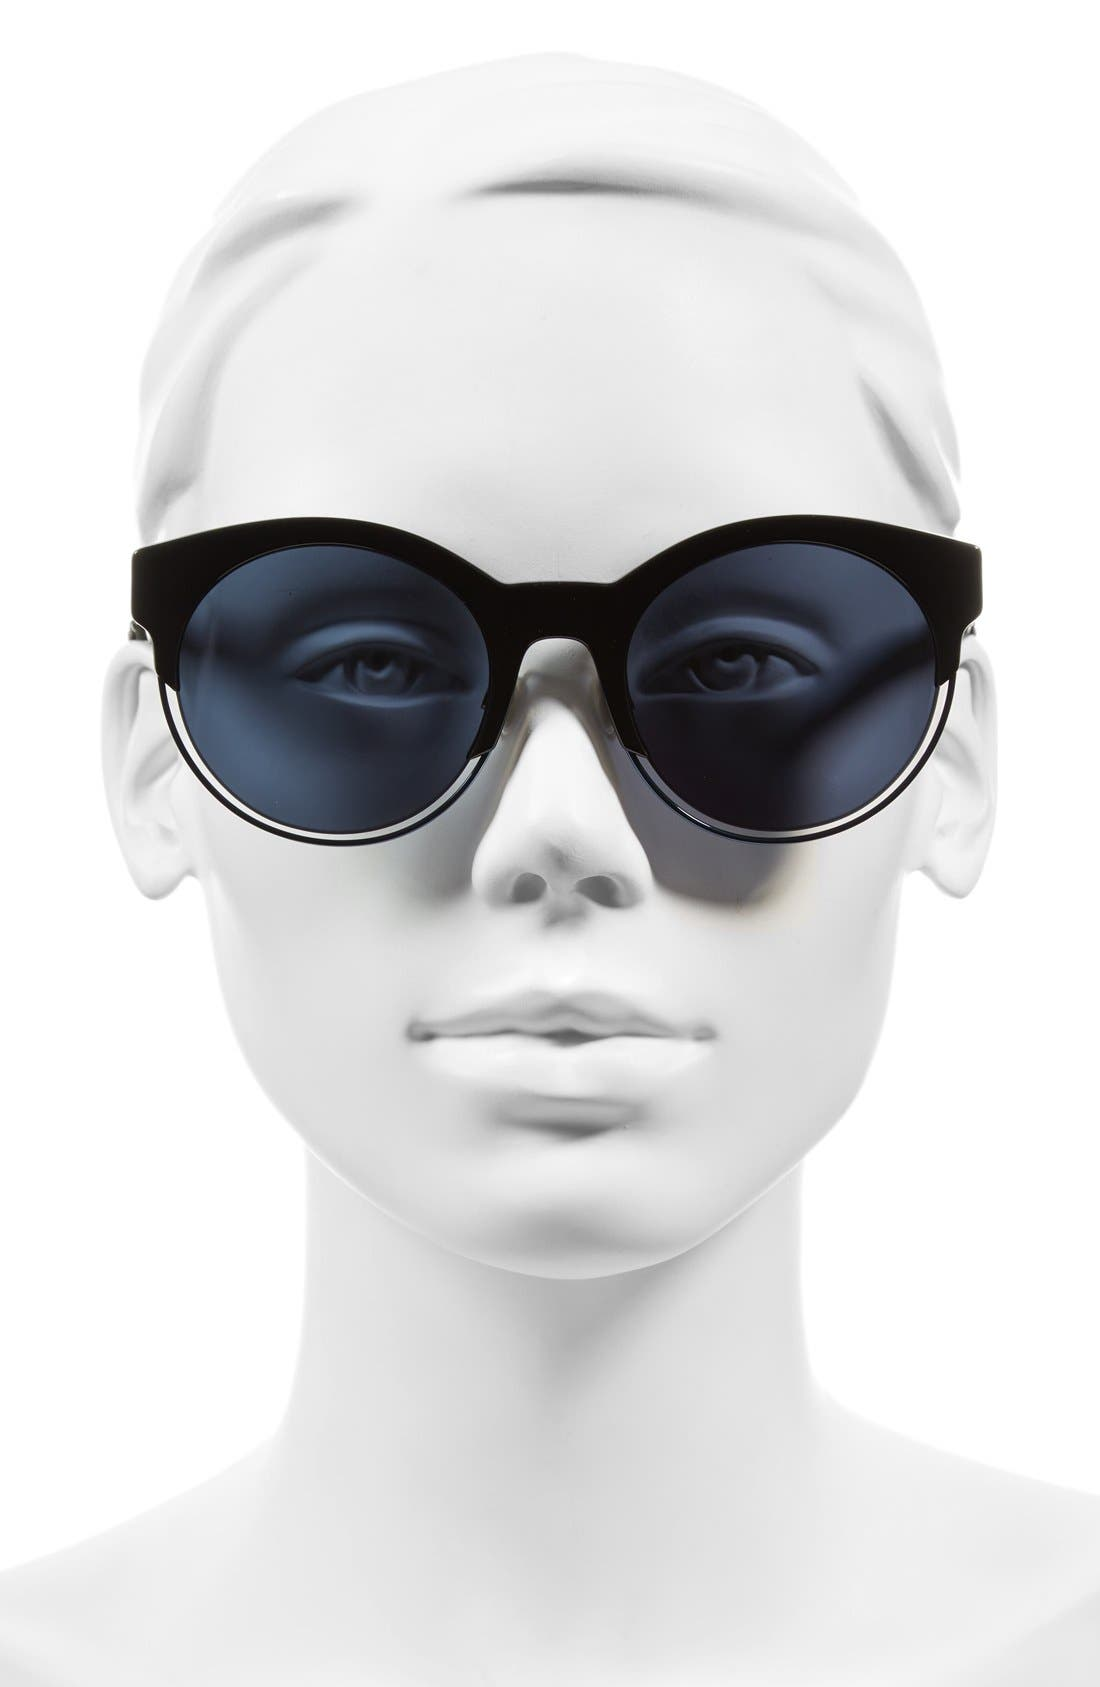 Siderall 1 53mm Round Sunglasses,                             Alternate thumbnail 2, color,                             Black/ Blue